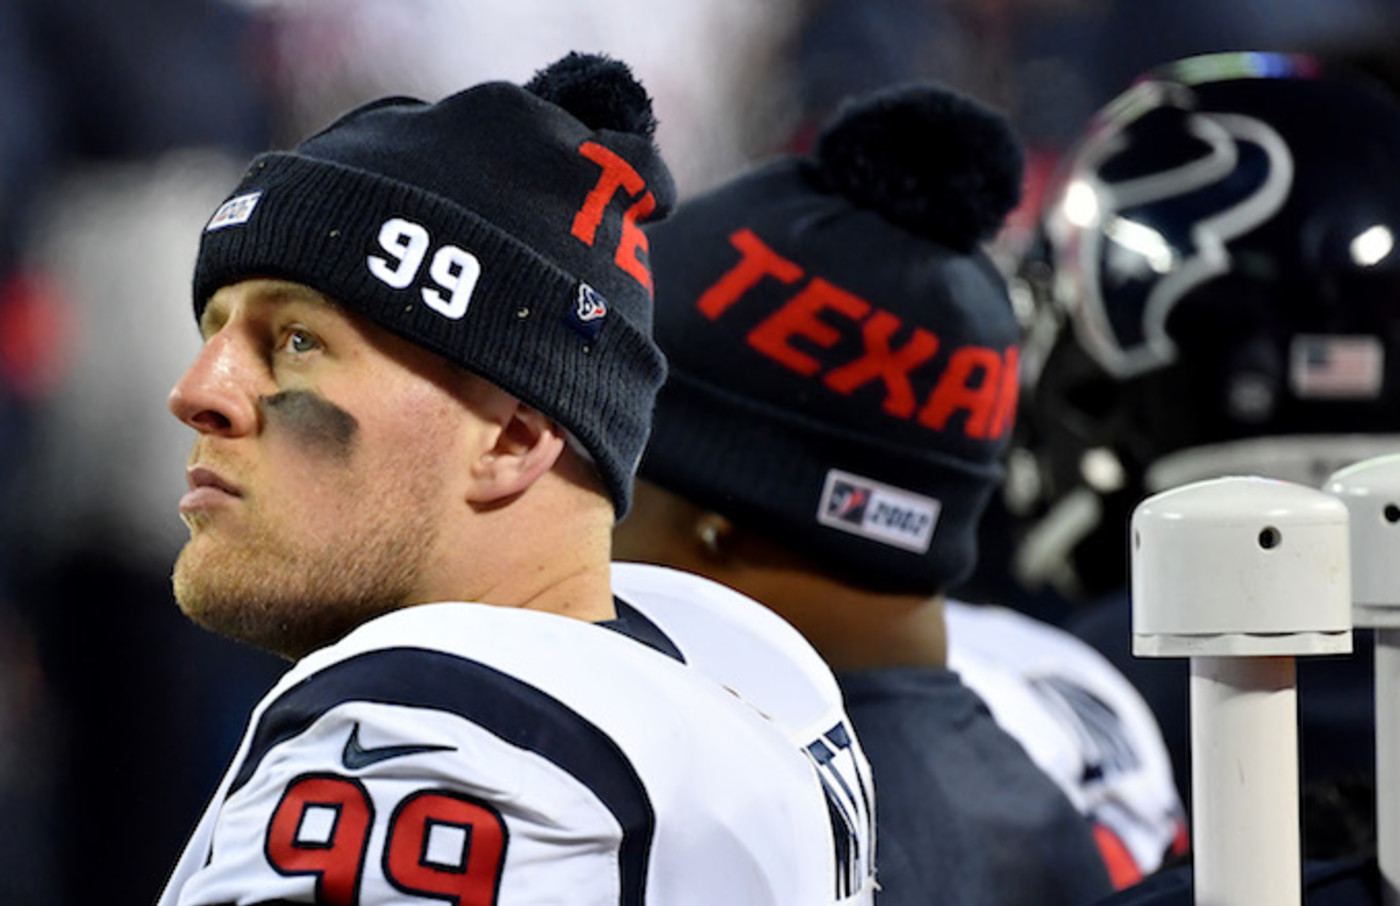 J.J. Watt looks on from the sidelines in the fourth quarter of the AFC Divisional playoff game.